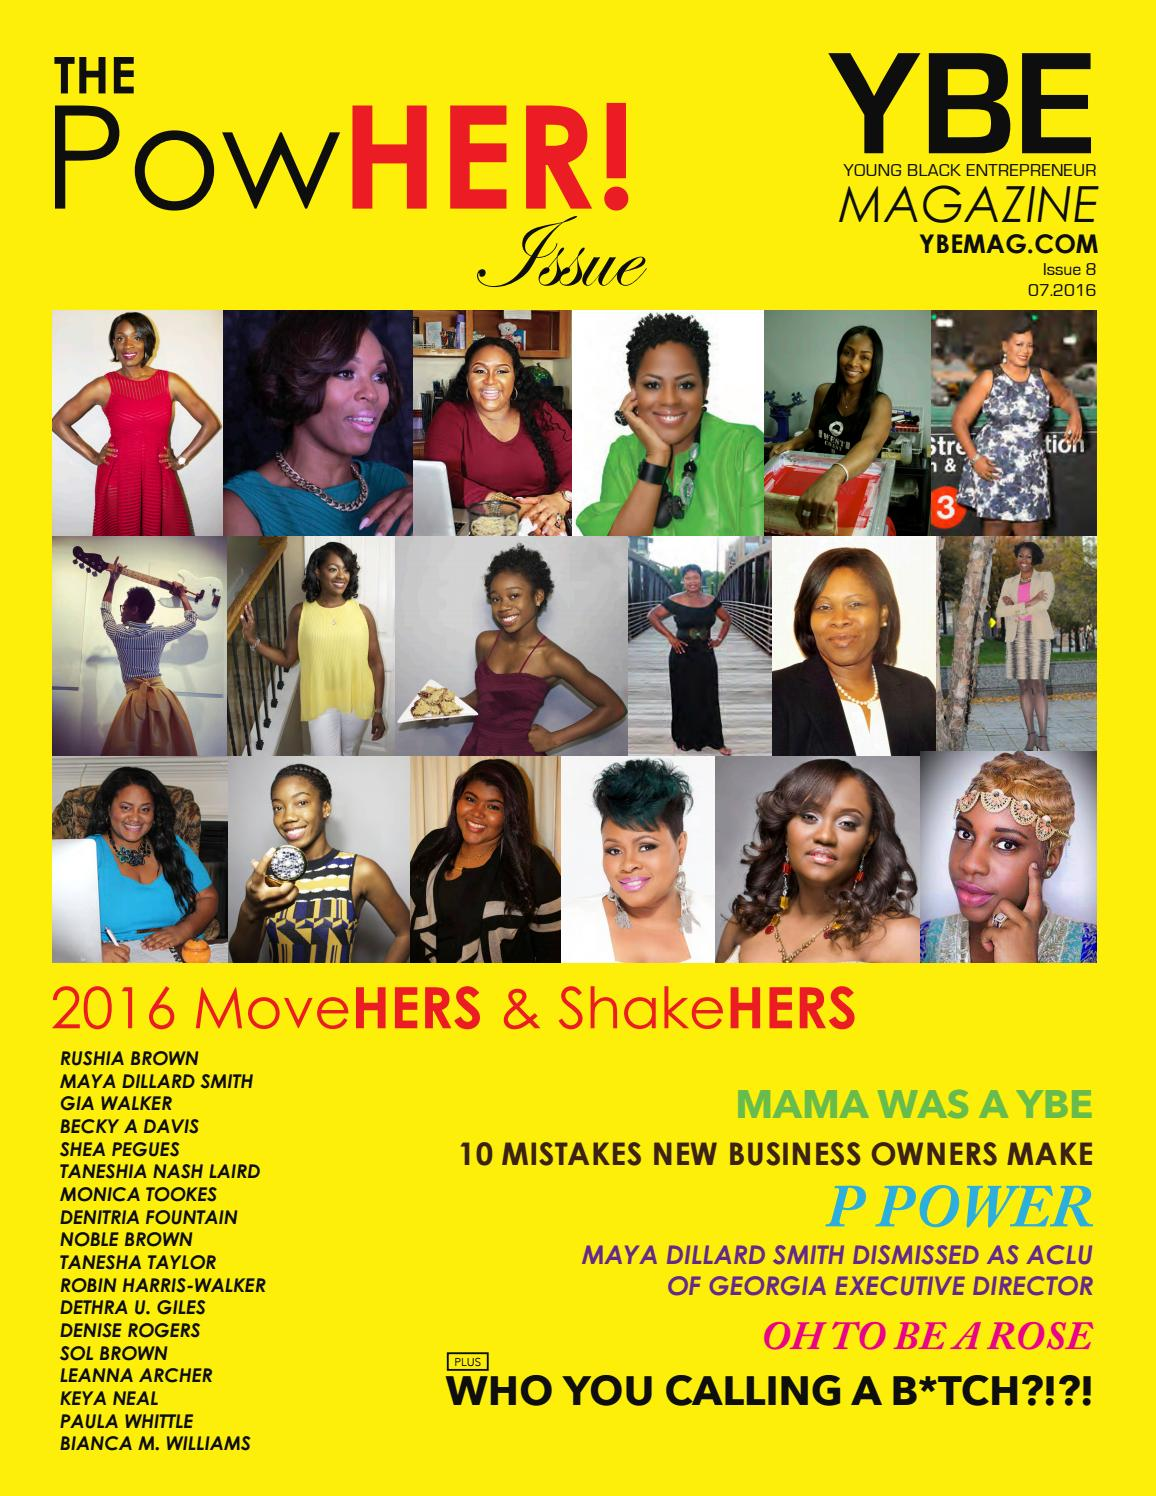 Hola directory of talent claudia morales - Young Black Entrepreneur Magazine